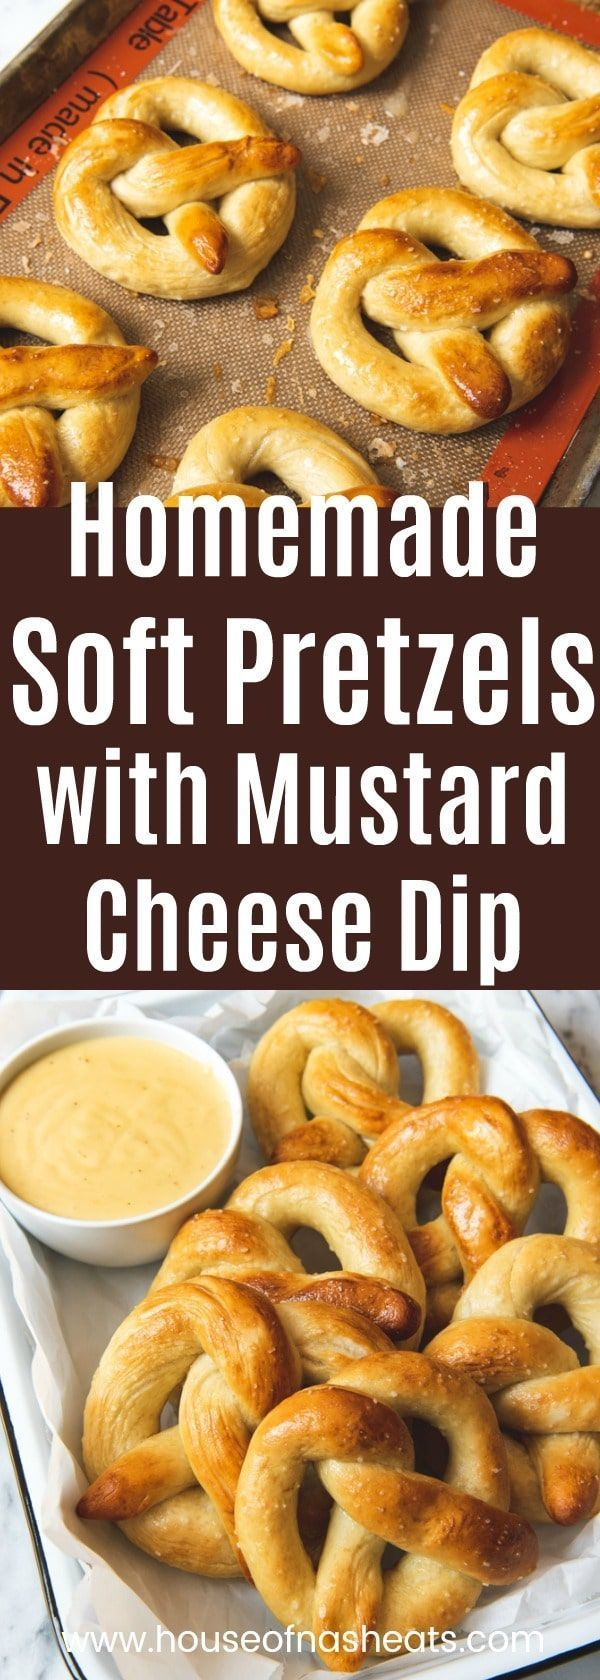 Homemade Soft Pretzels with Mustard Cheese Dip